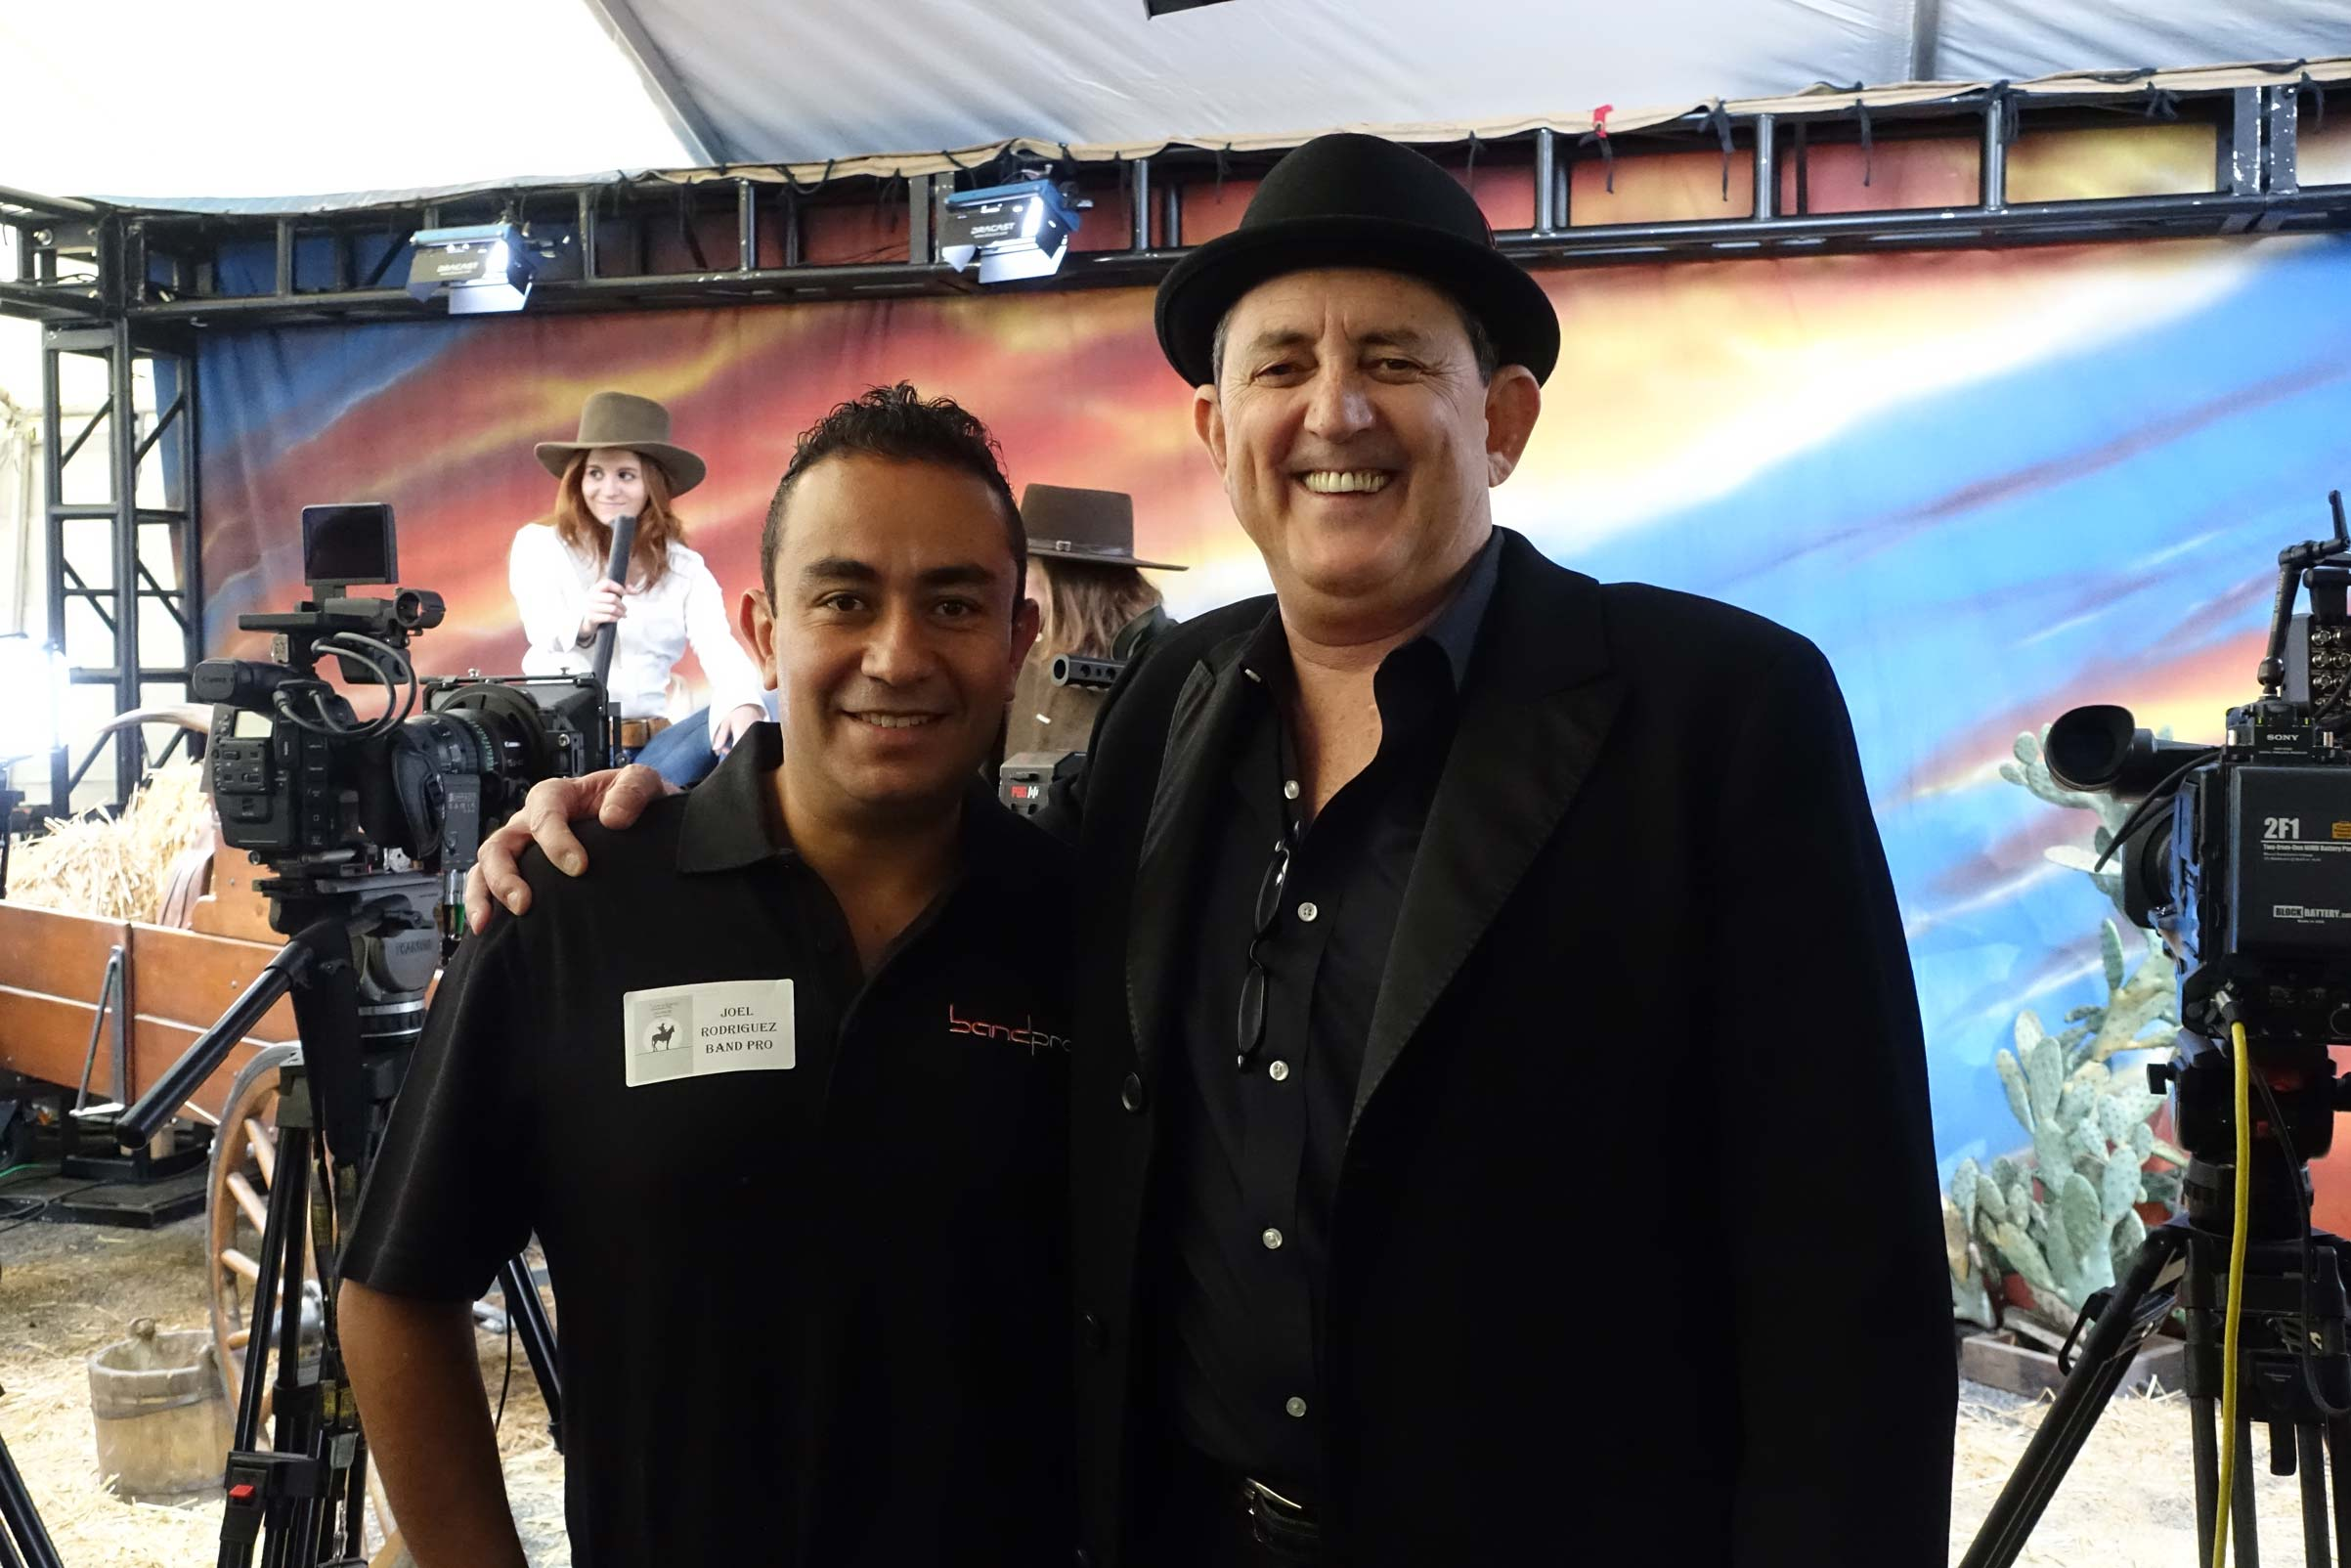 Joel Rodriguez, who will represent Band Pro in Central and South America